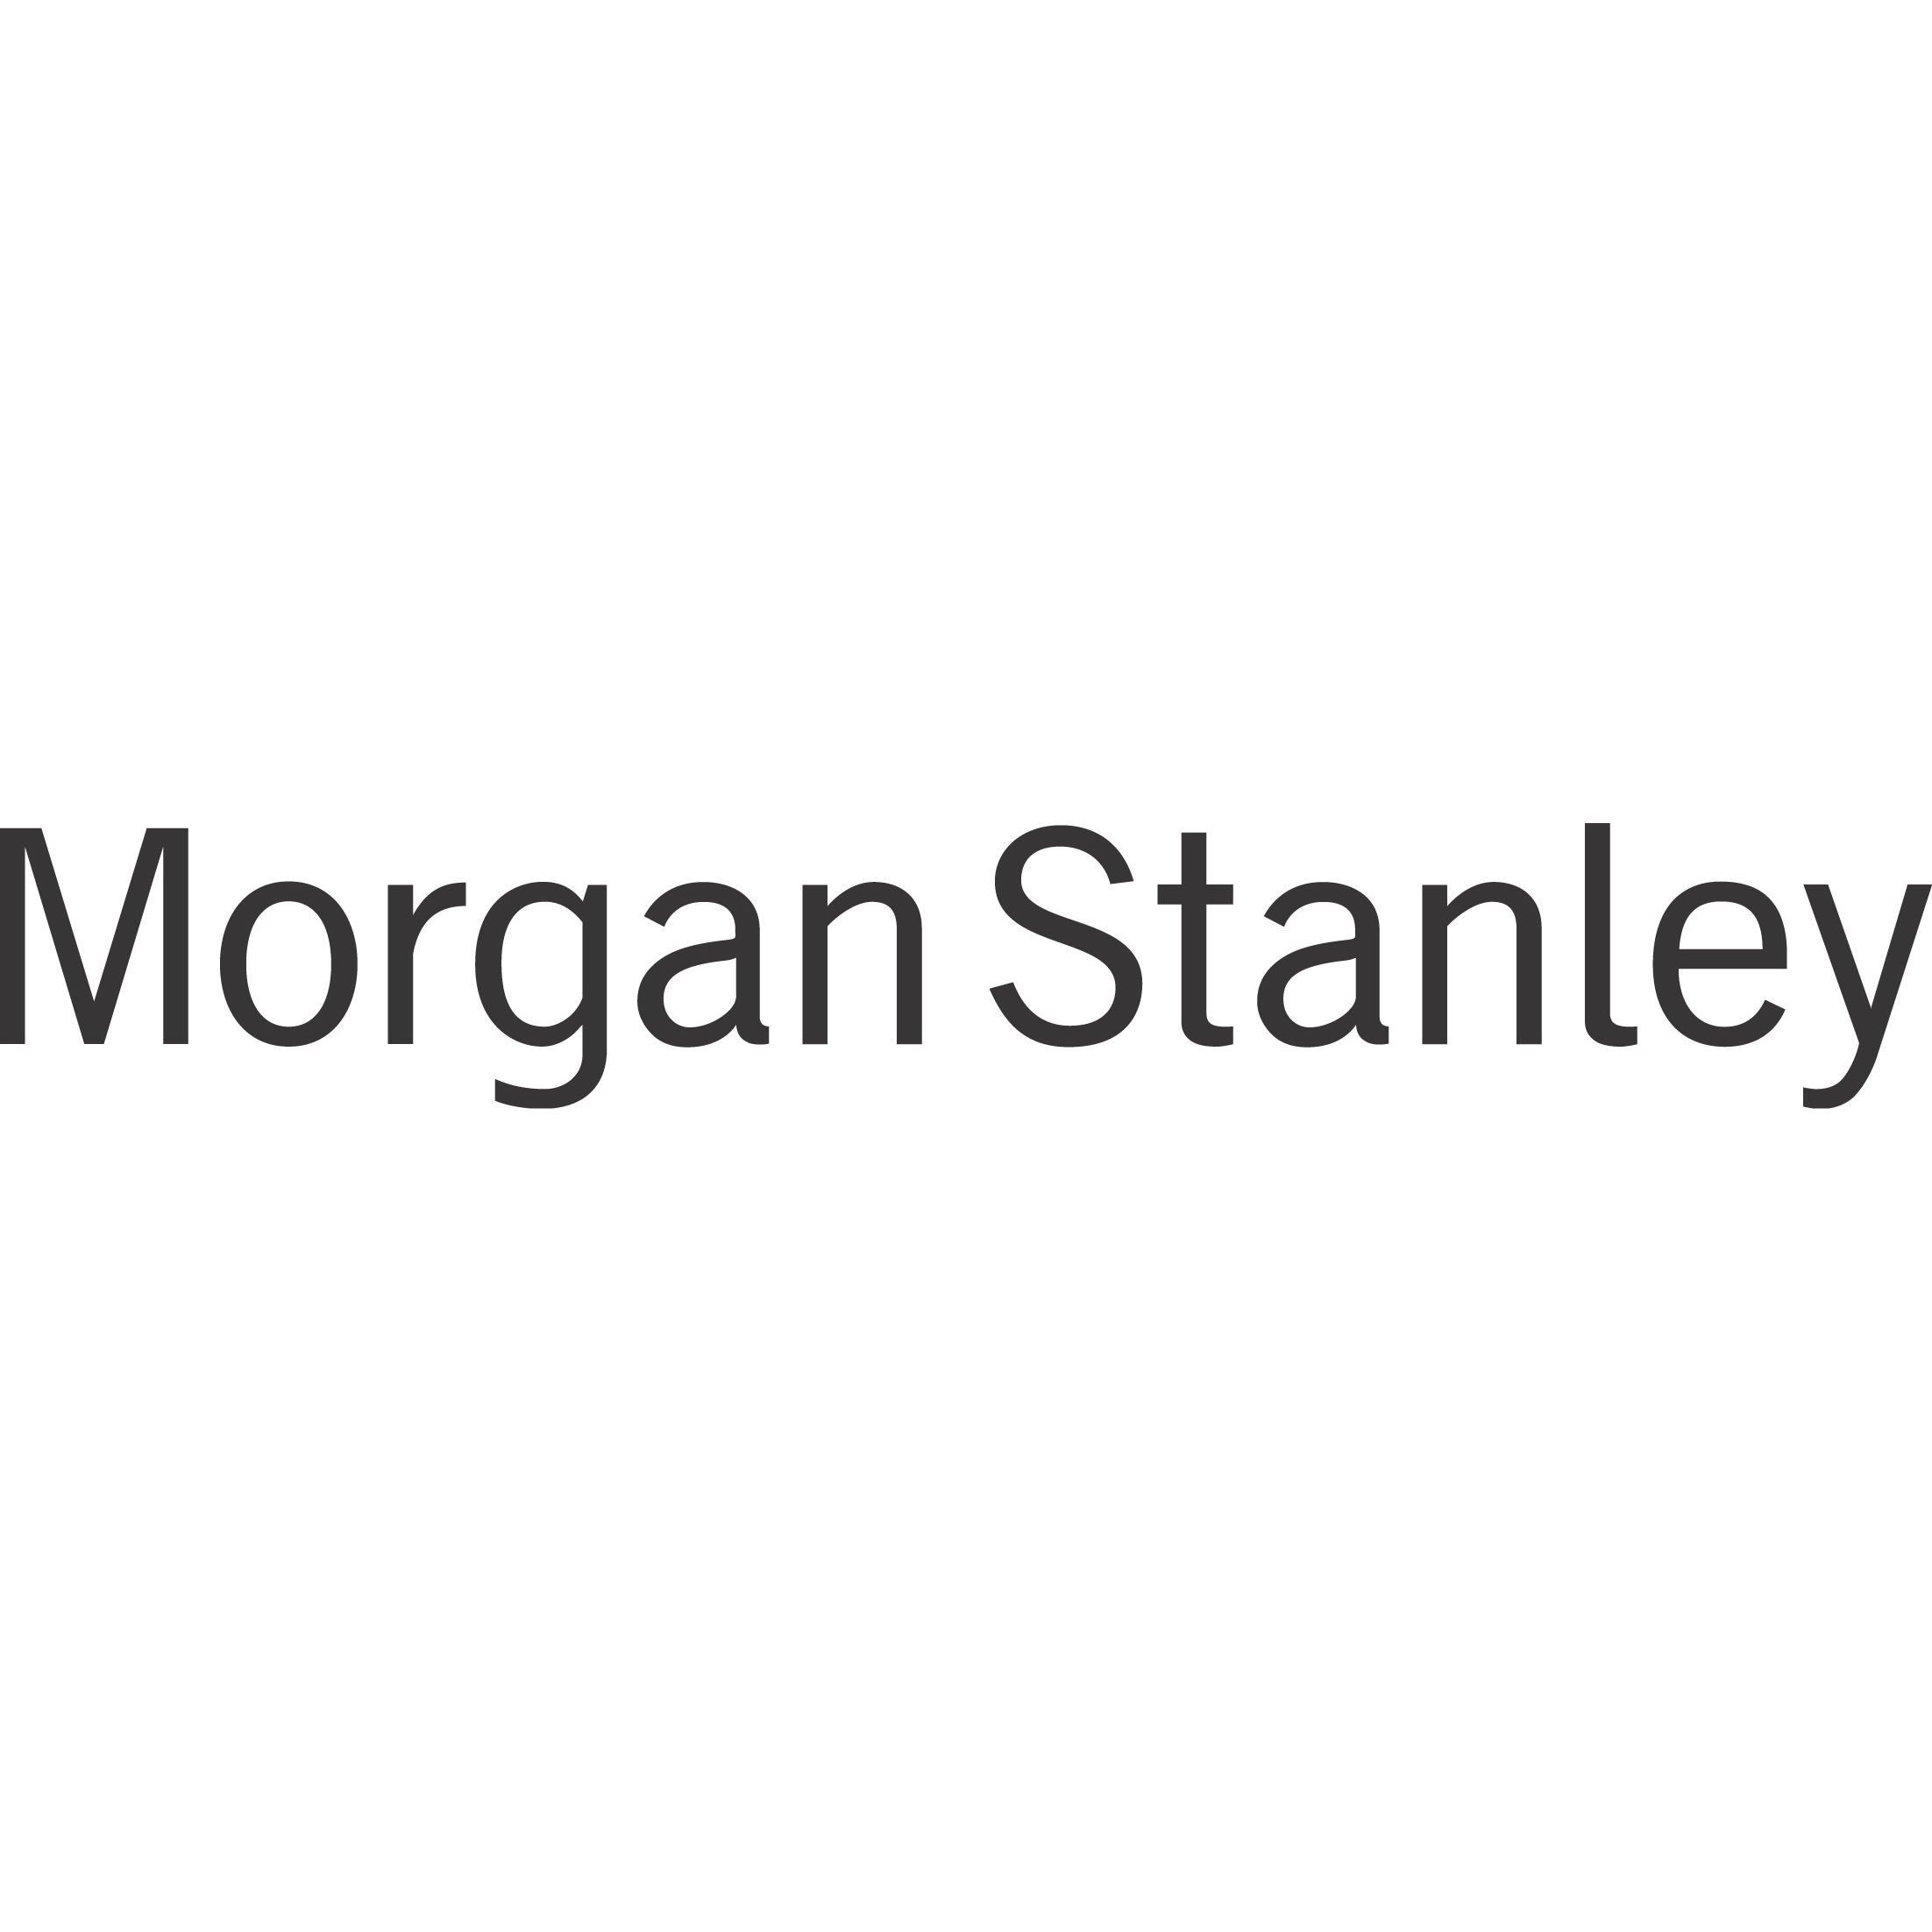 Dan Flores - Morgan Stanley | Financial Advisor in Palo Alto,California